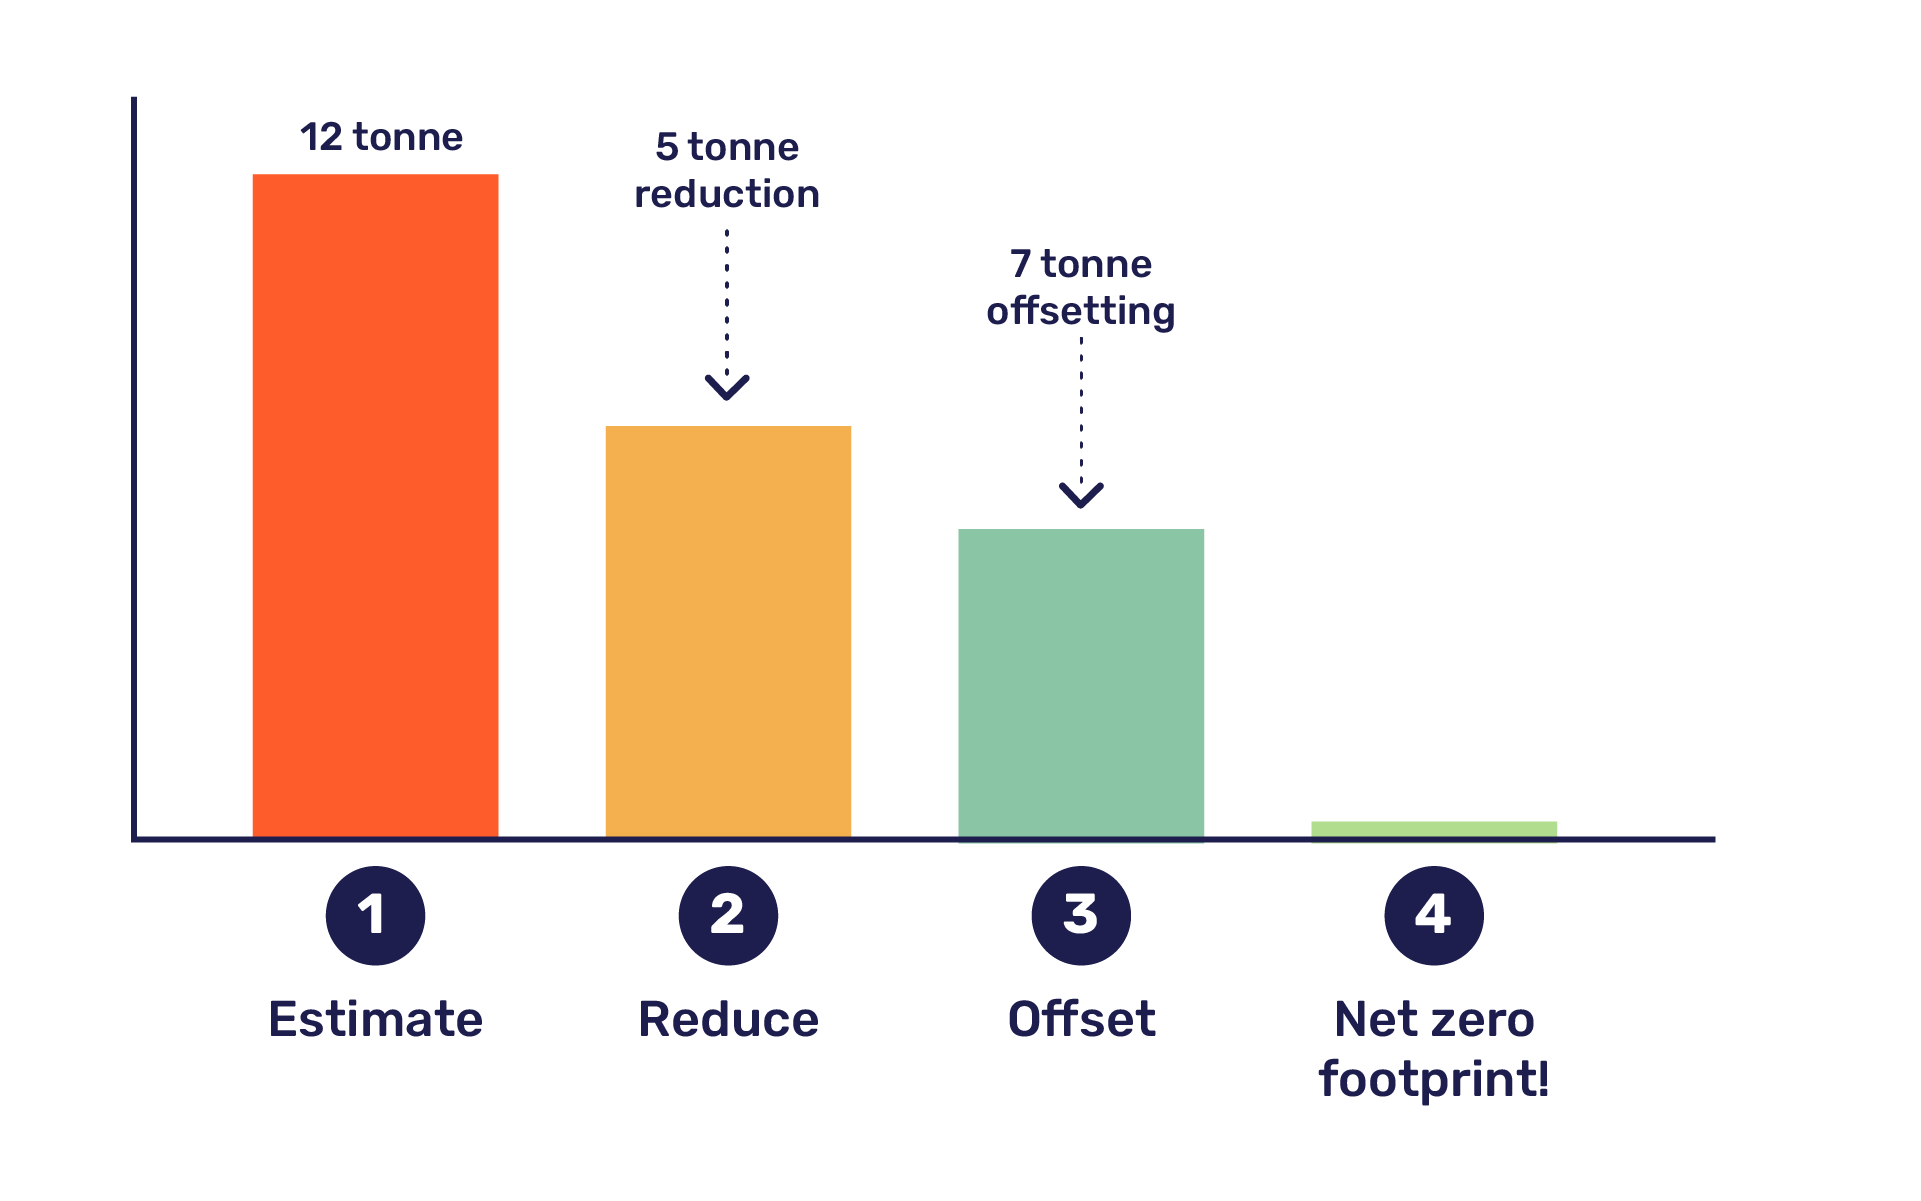 4 steps to reducing carbon footprint